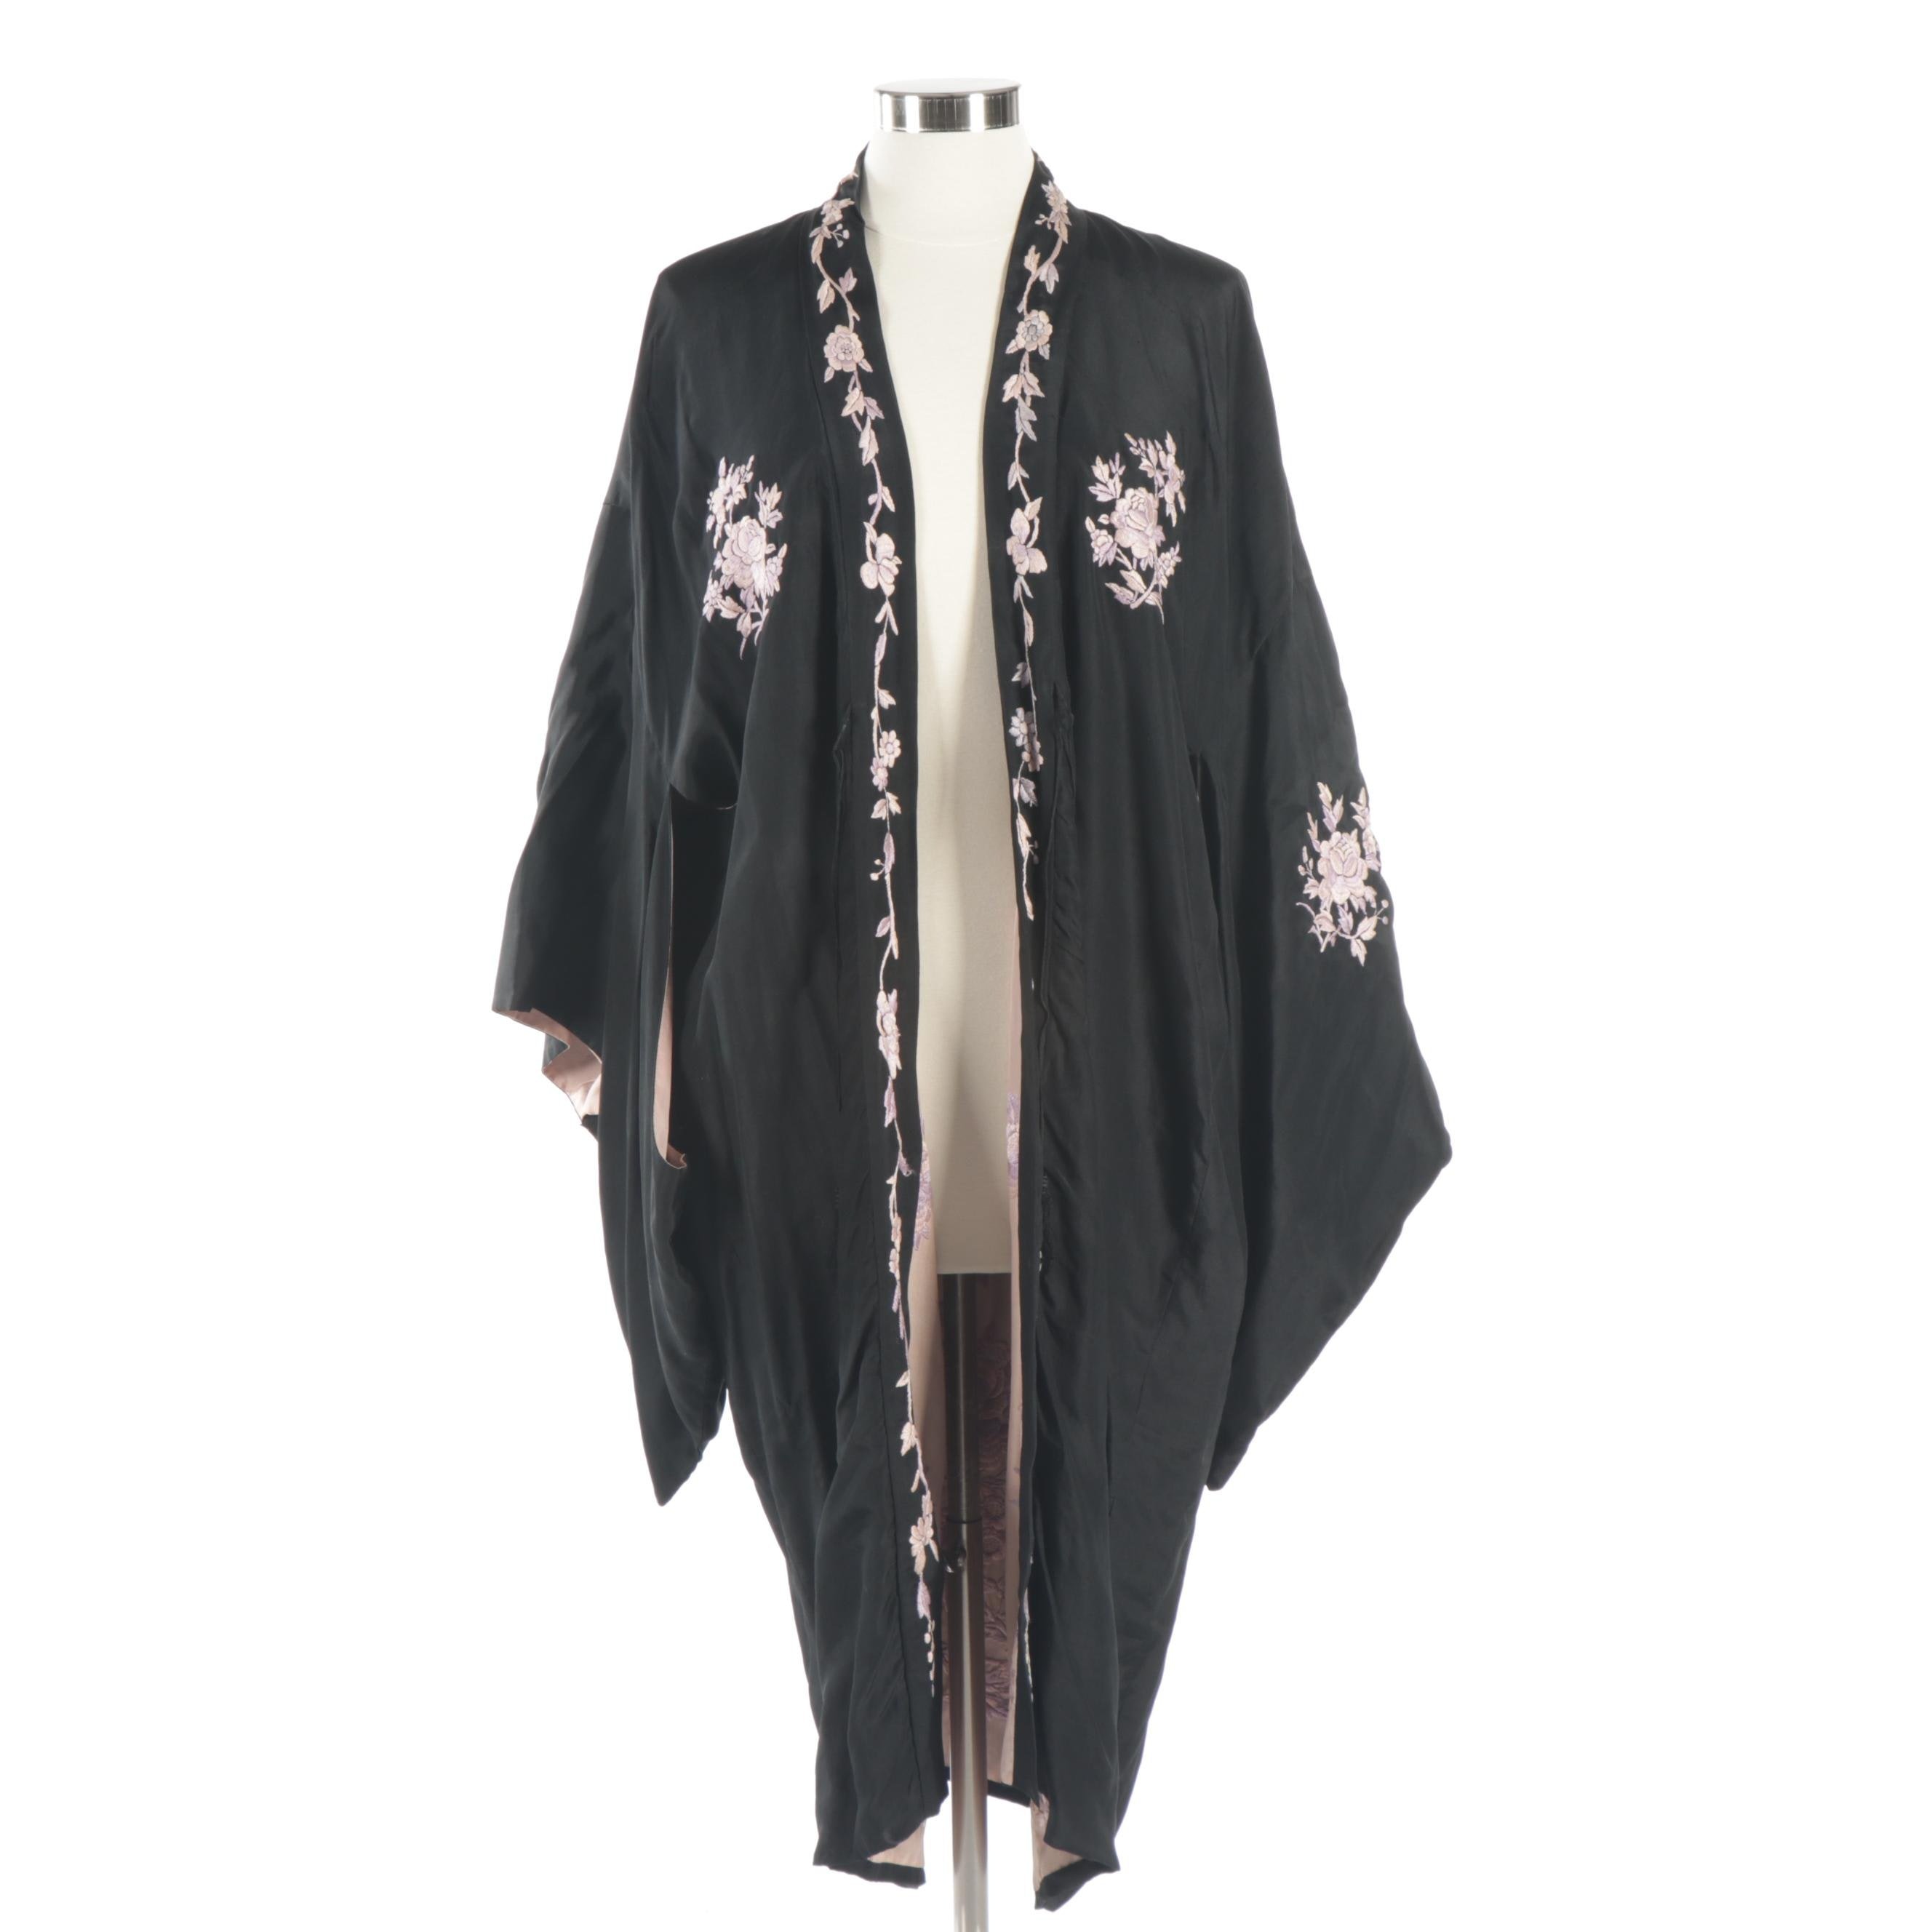 Black and Pink Embroidered Robe in Florals with Kimono Sleeves and Tassels